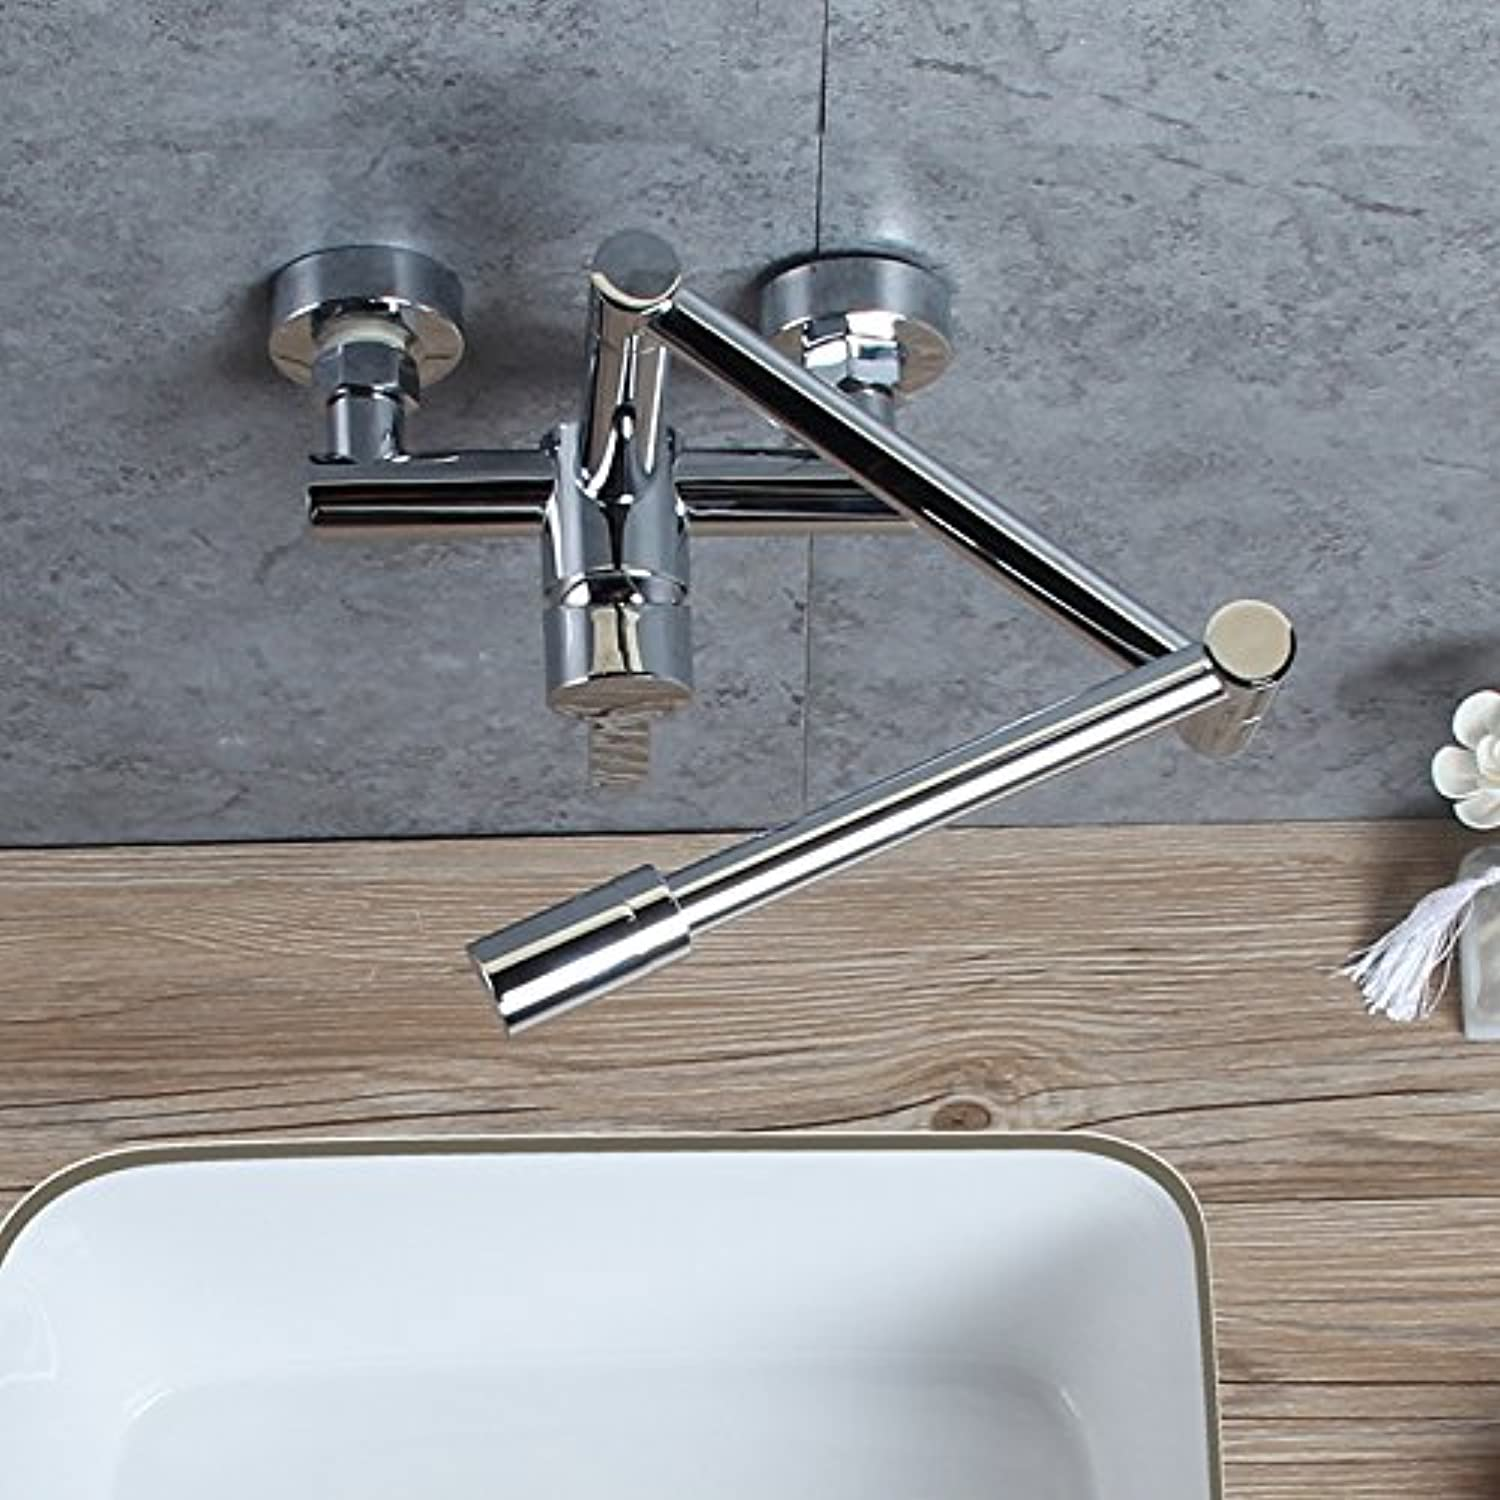 SUhang Kitchen Sink Taps The Copper Into The Wall Hot And Cold Kitchen Faucet Fold-Stretch To redate The Tank Washing Dishes Pool Dish Tub Faucet